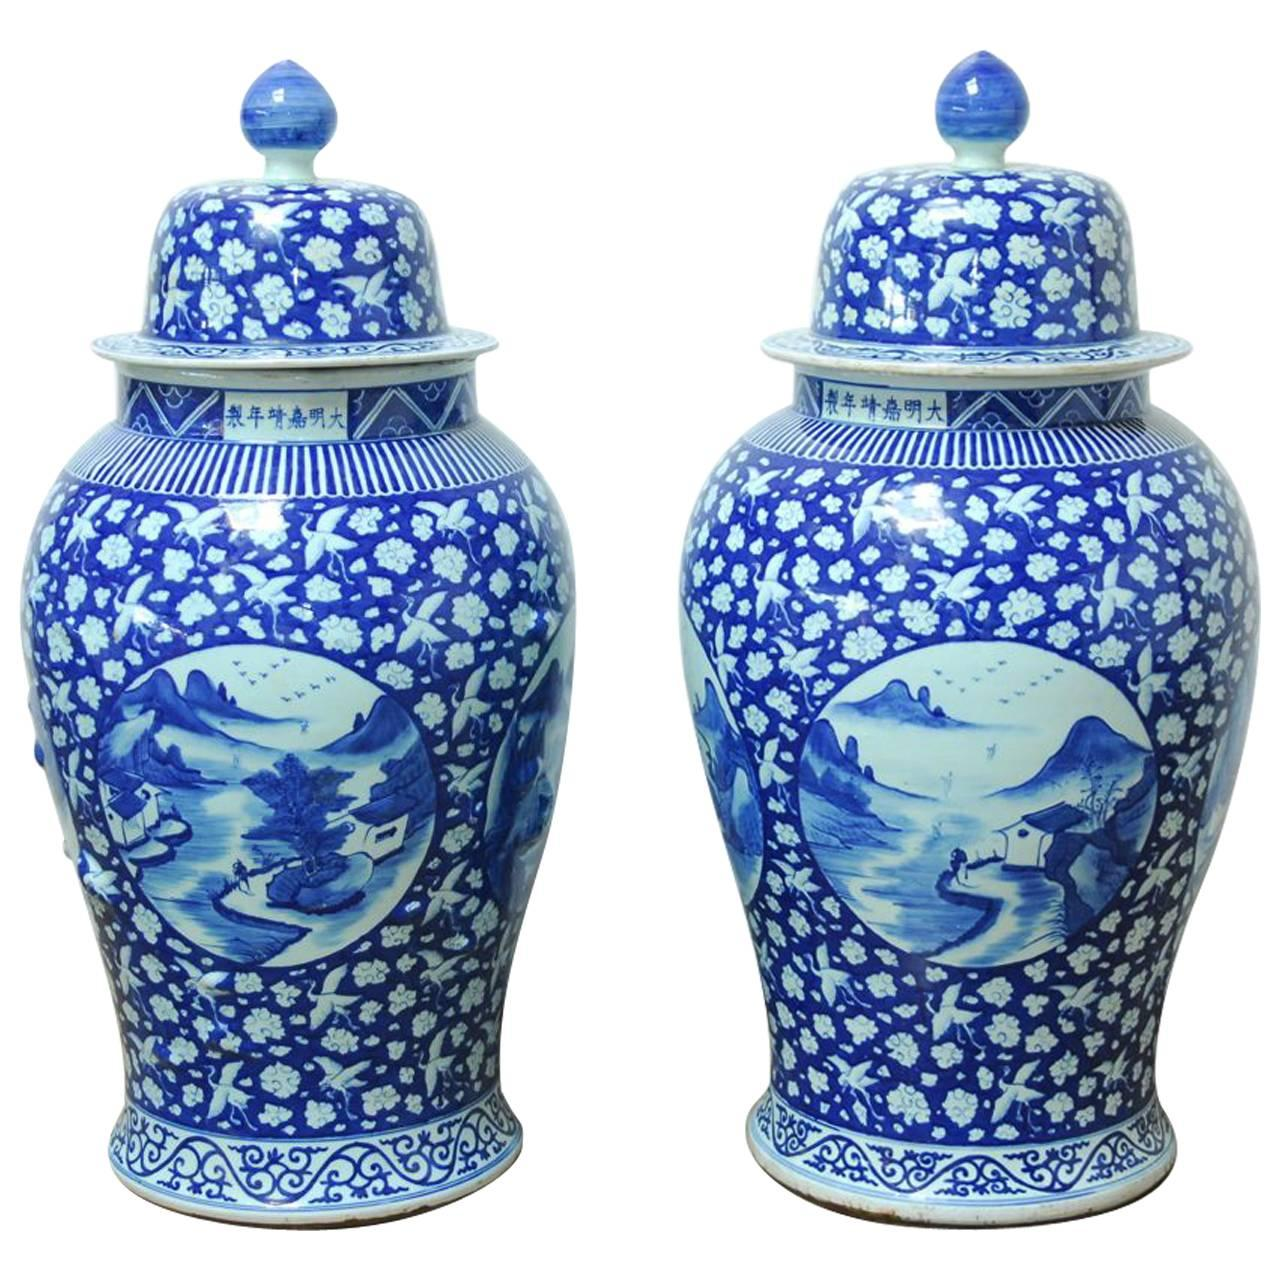 Monumental Pair of Chinese Blue and White Temple Ginger Jar Vases